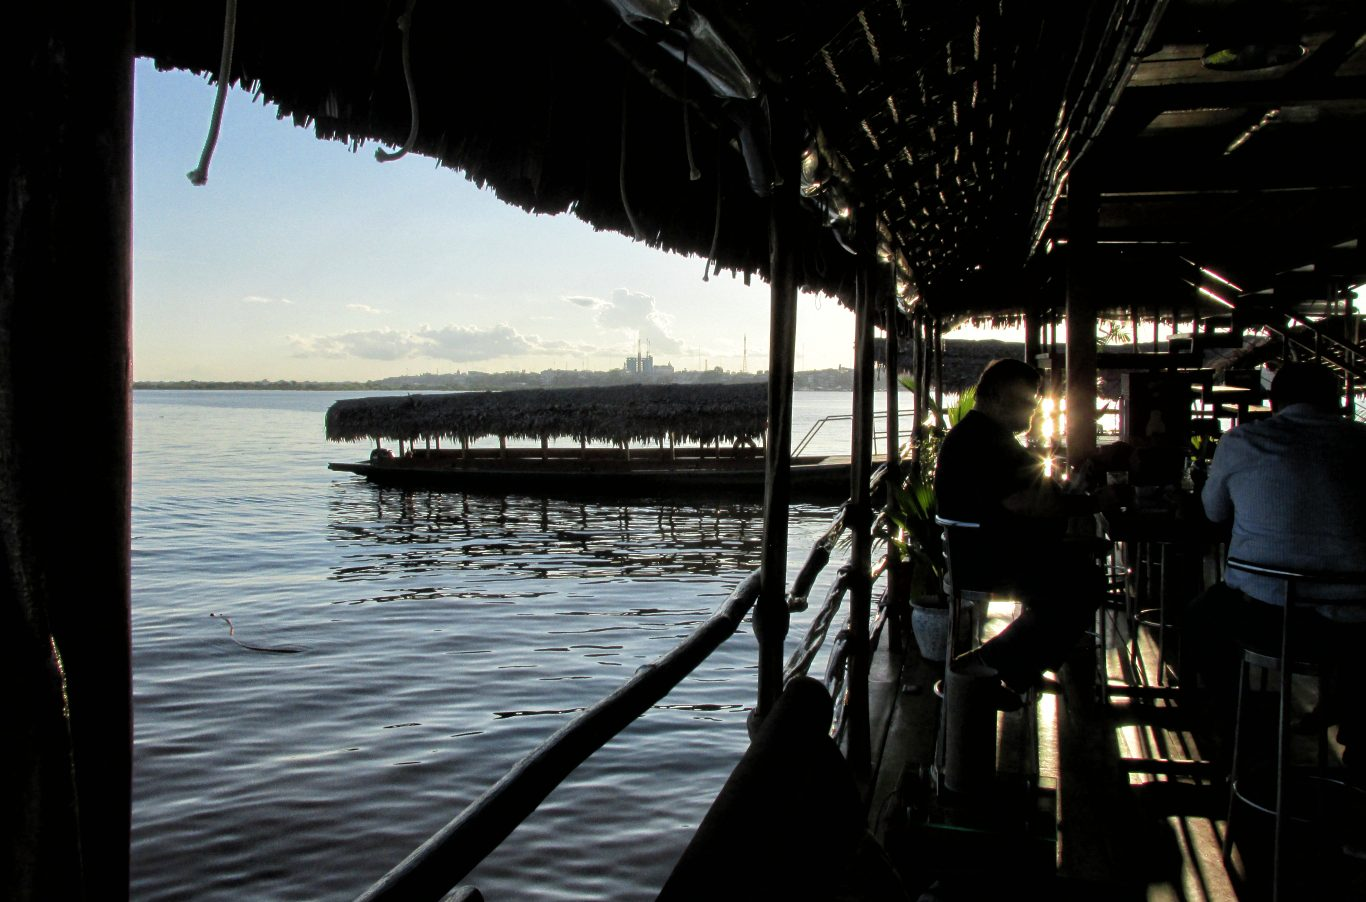 Iquitos travel guide, view from the floating restaurant